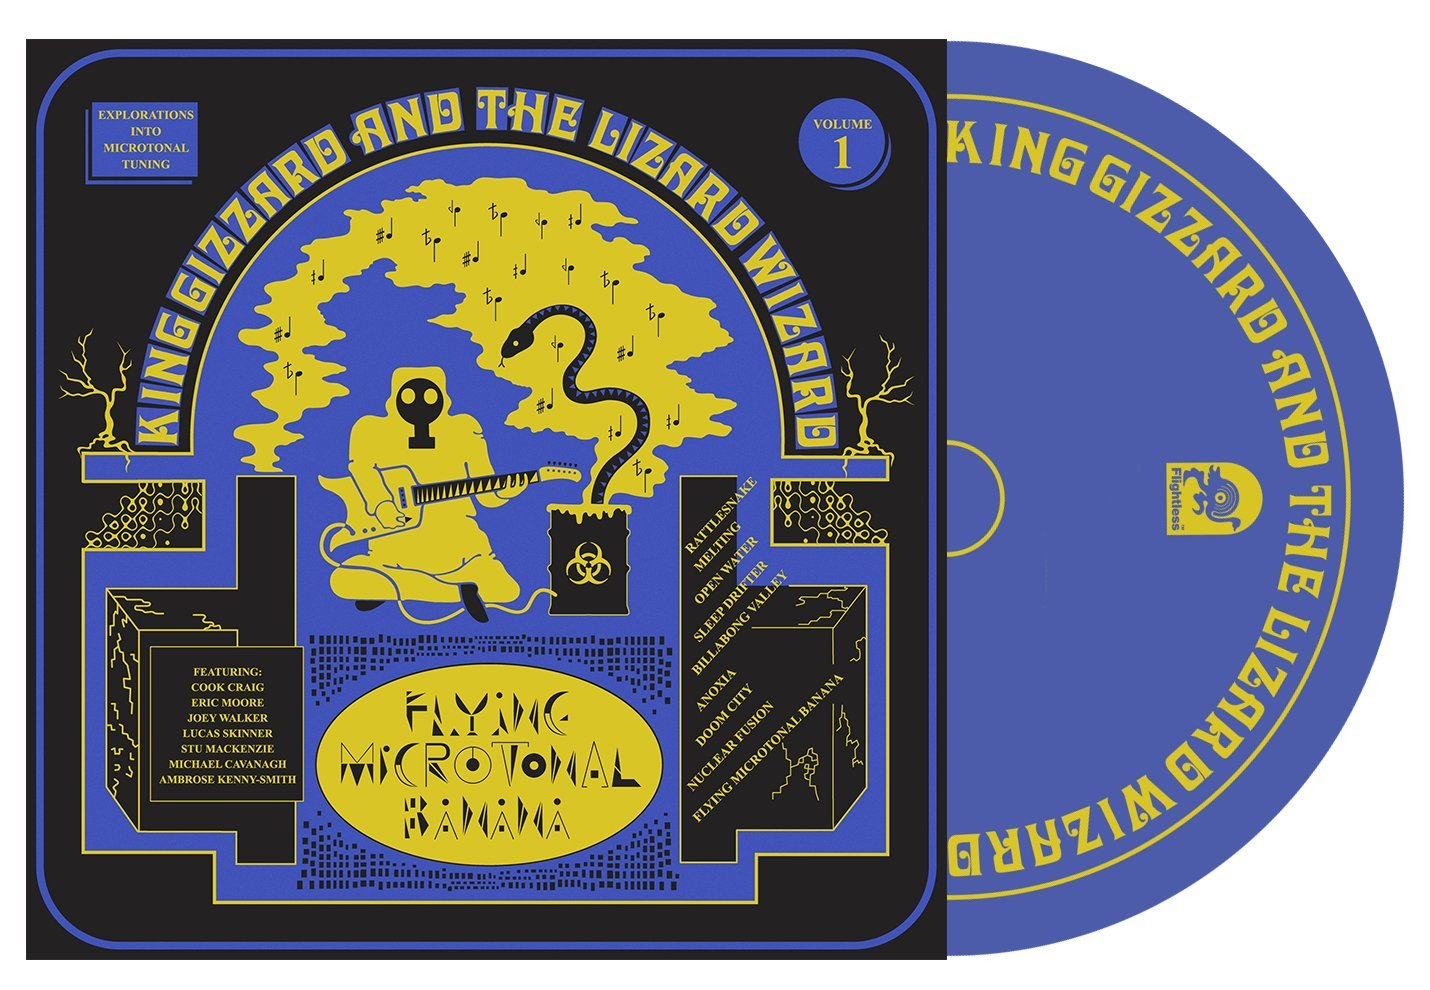 King Gizzard & The Lizard Wizard - Flying Microtonal Banana